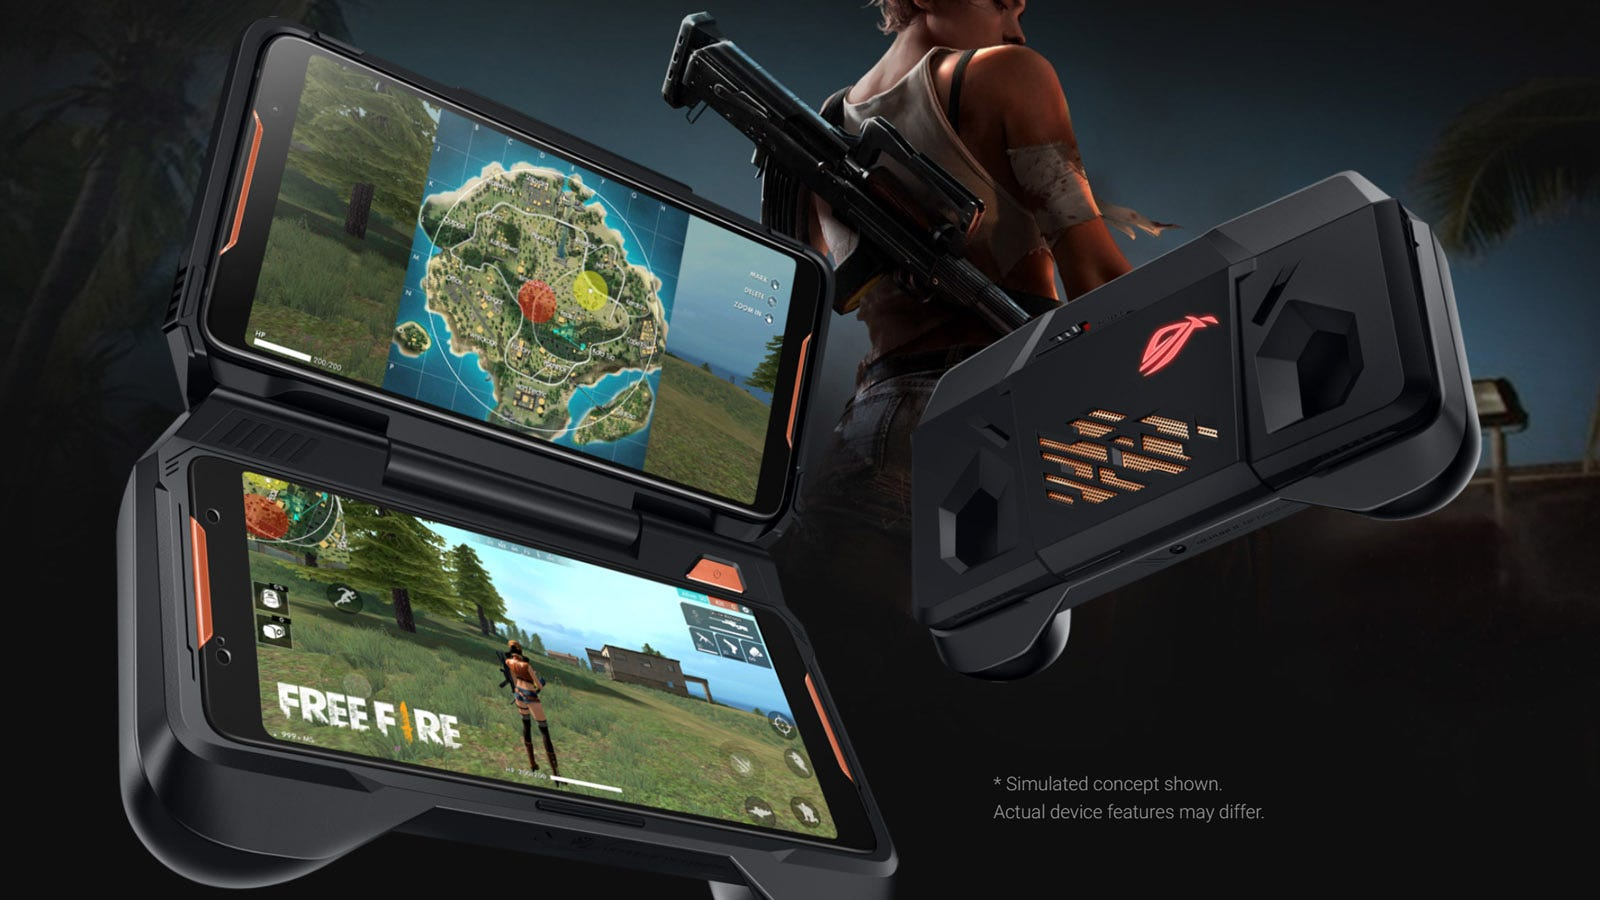 Asus ROG Phone in its optional case, showing the second screen.